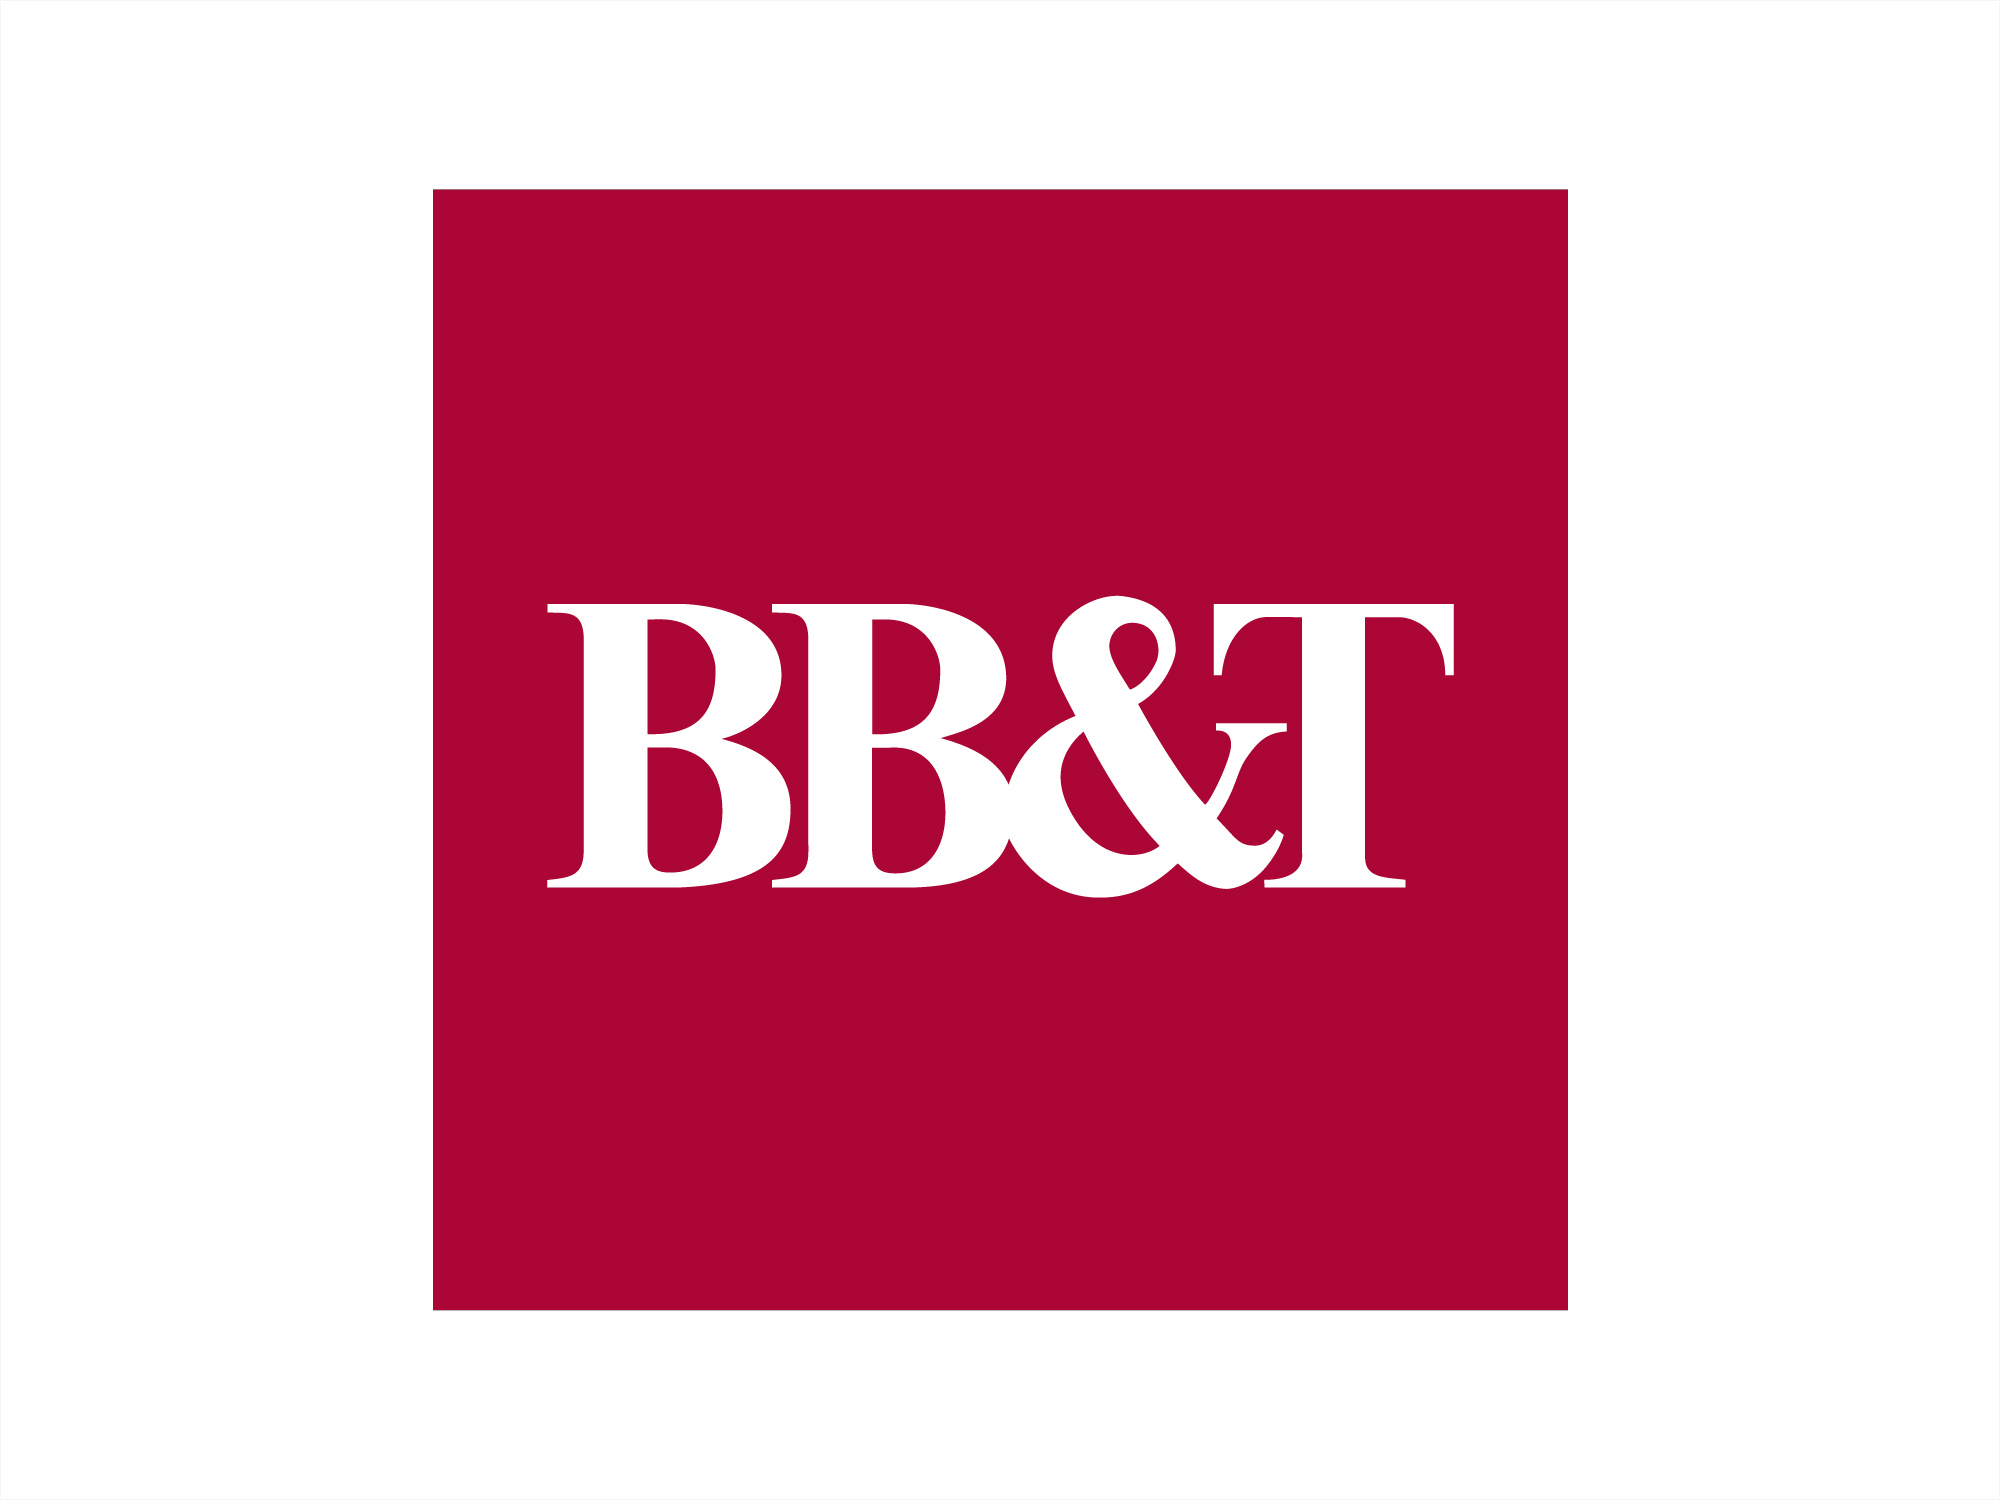 BB&T Suffers Interruption In Service